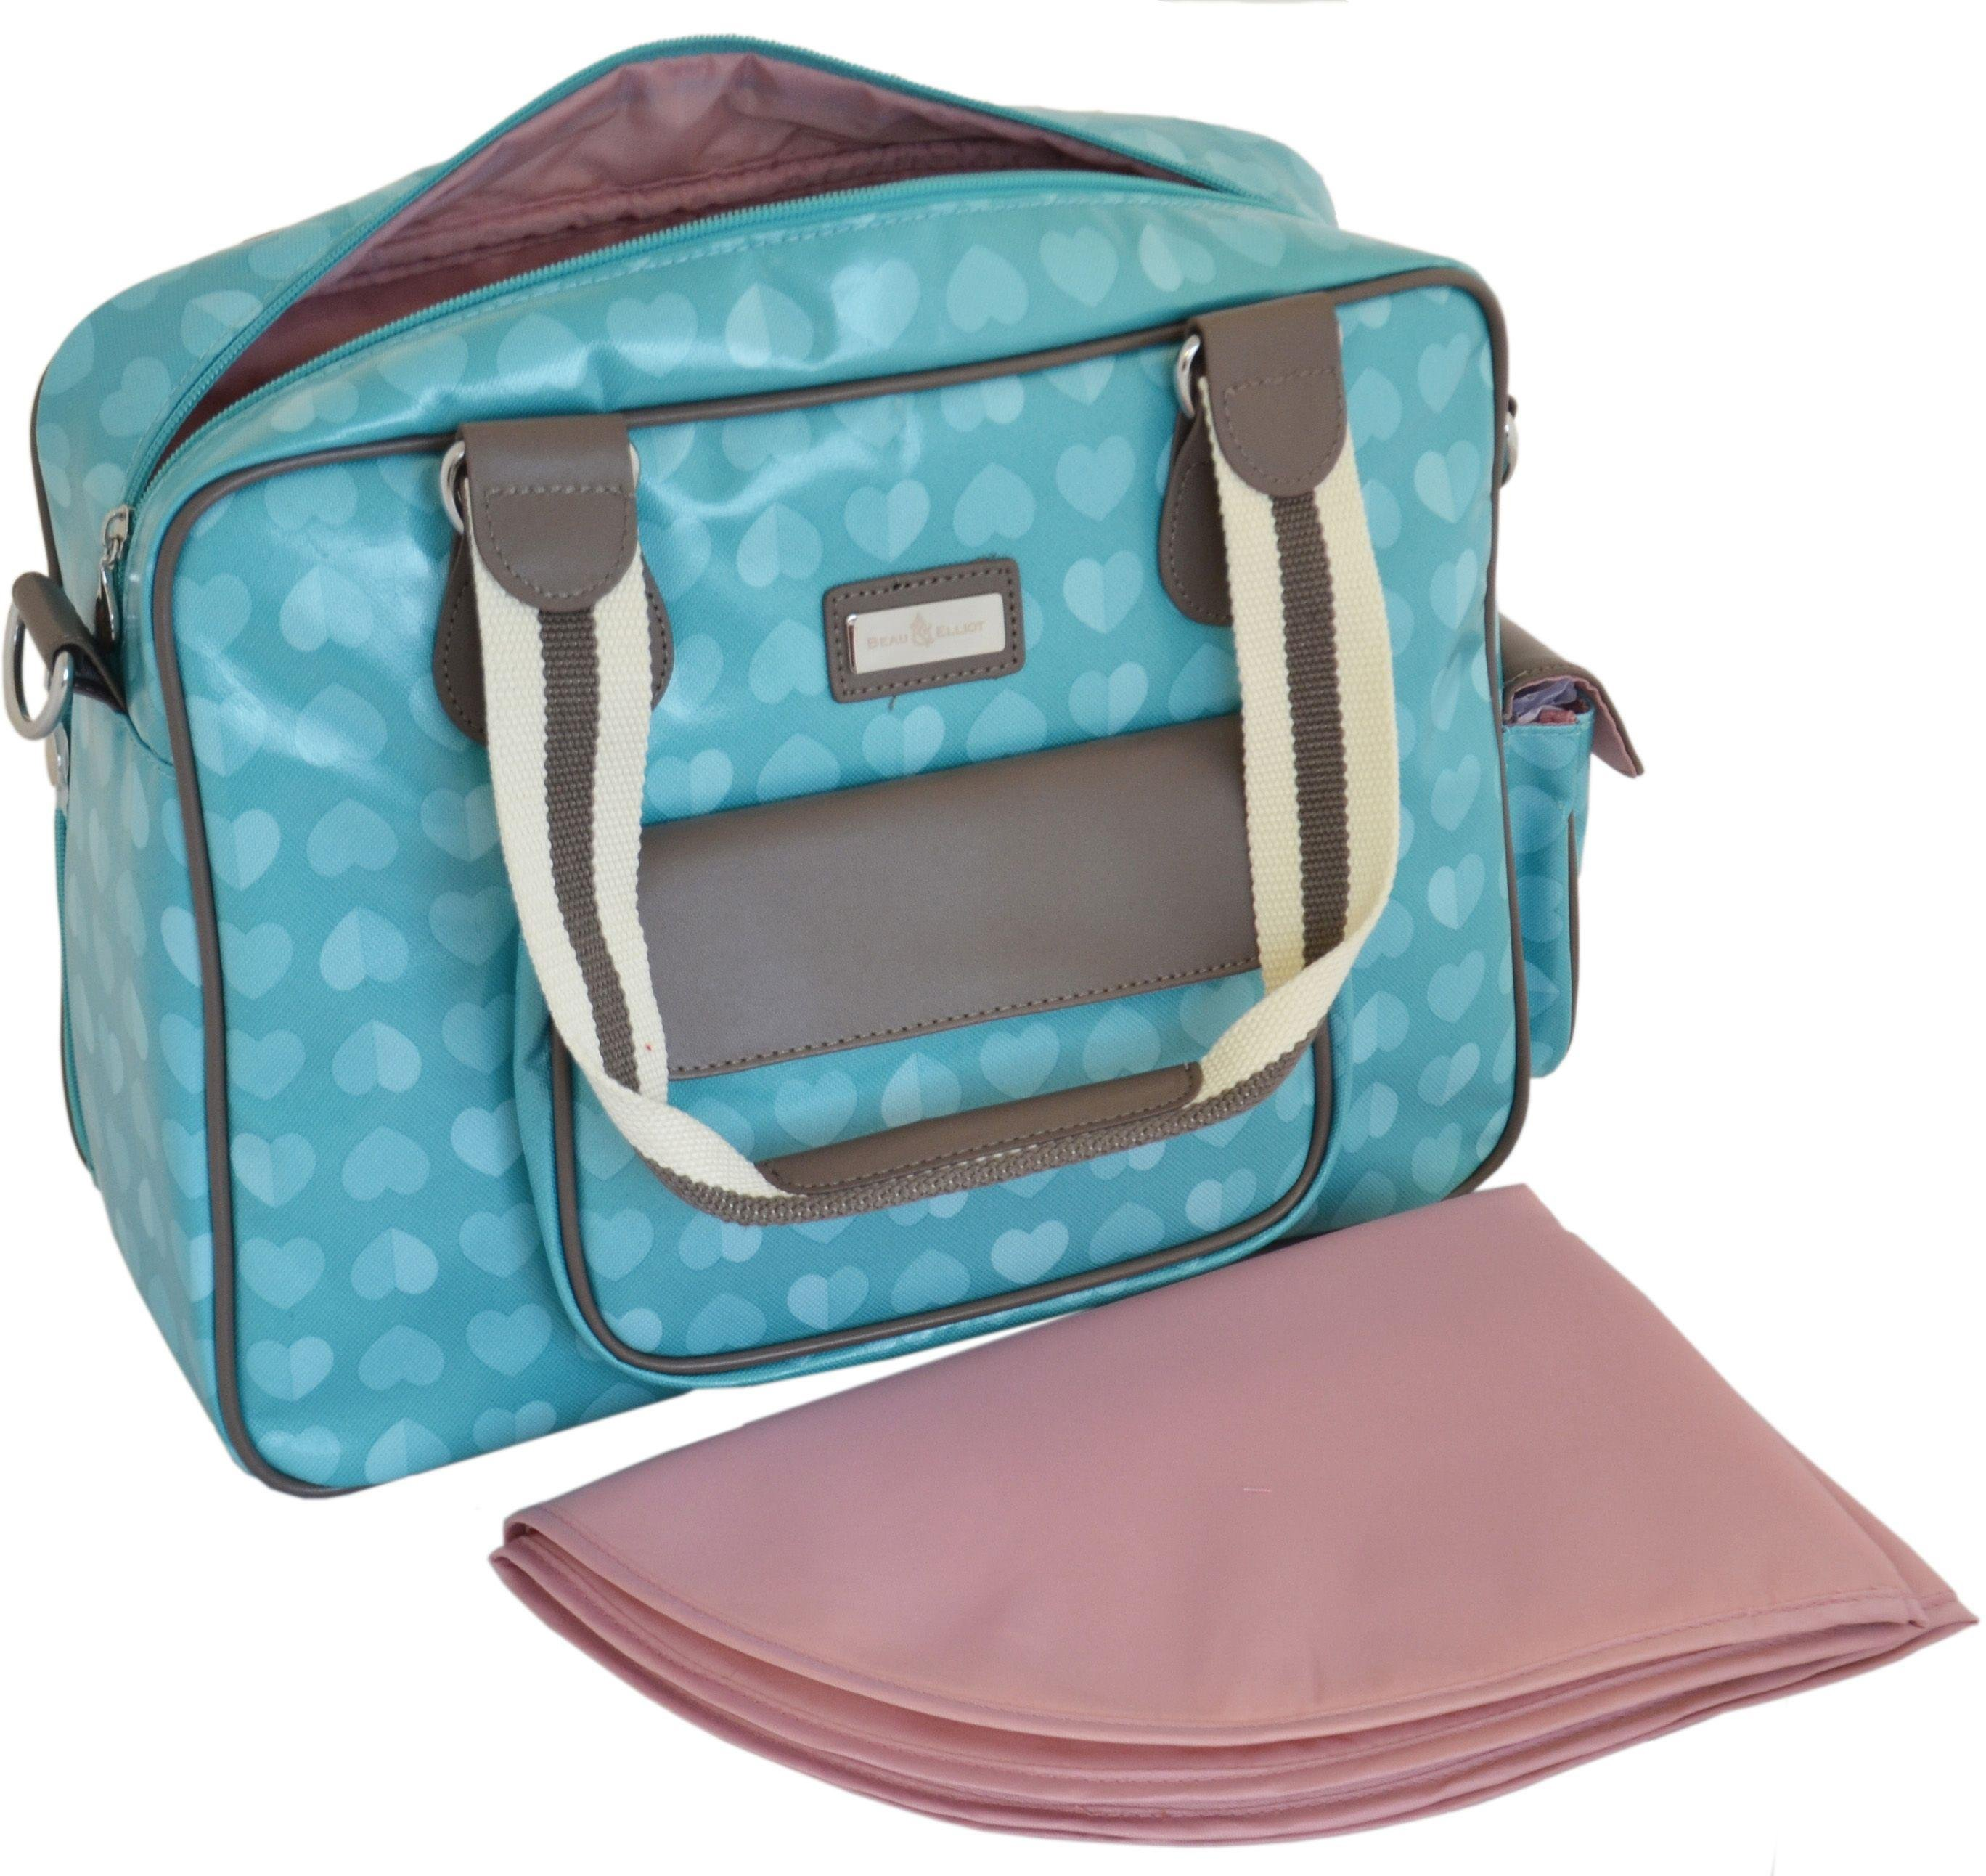 Beau and Elliot Confetti Baby Changing Bag - Aqua.